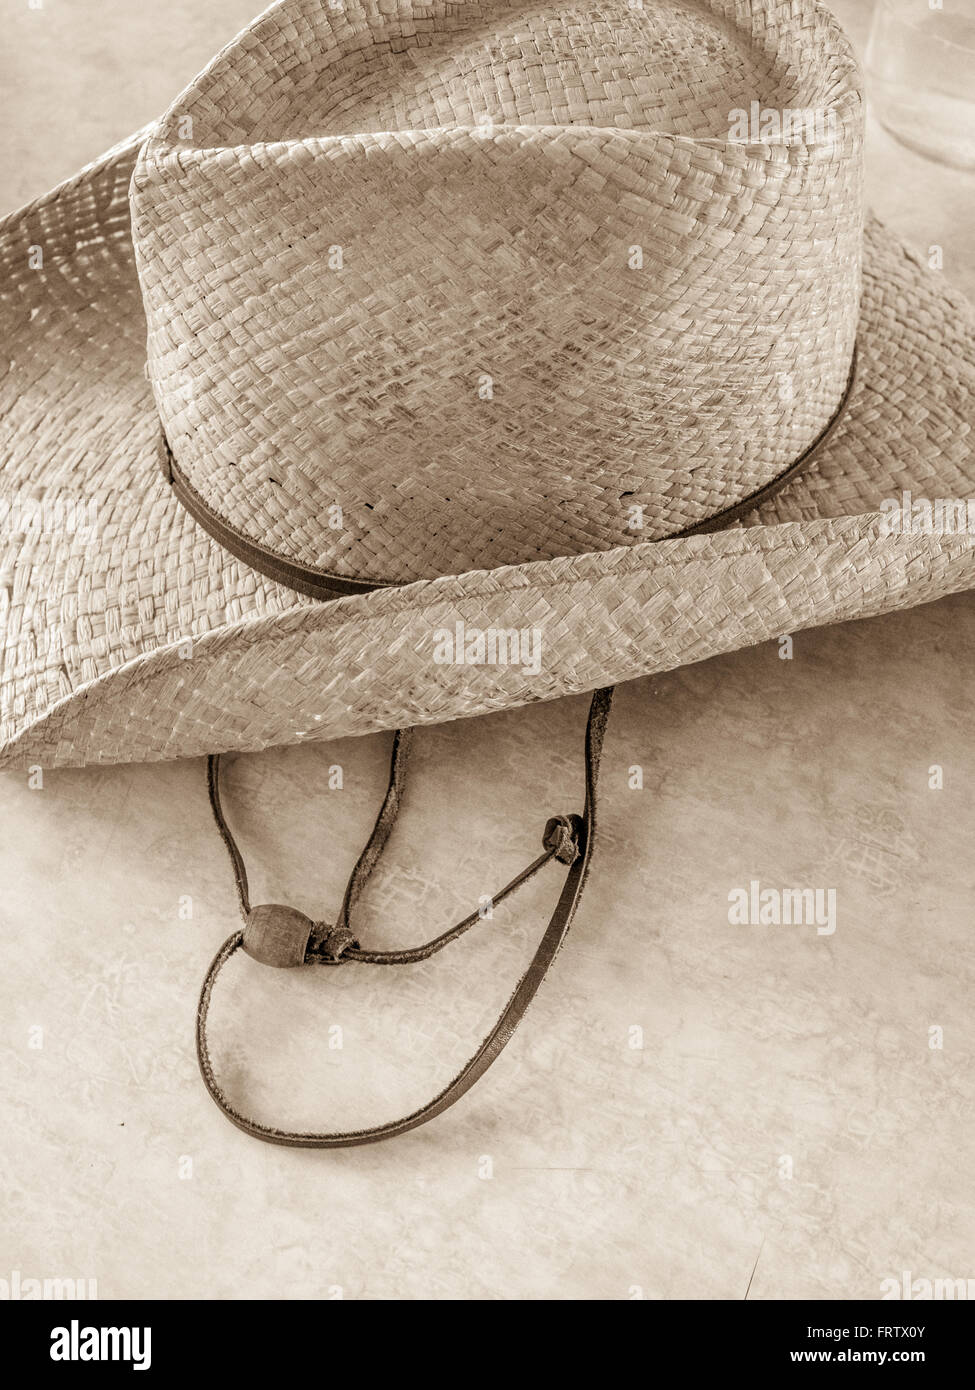 9507fe9f65cc3 Straw Hat Band Stock Photos   Straw Hat Band Stock Images - Alamy